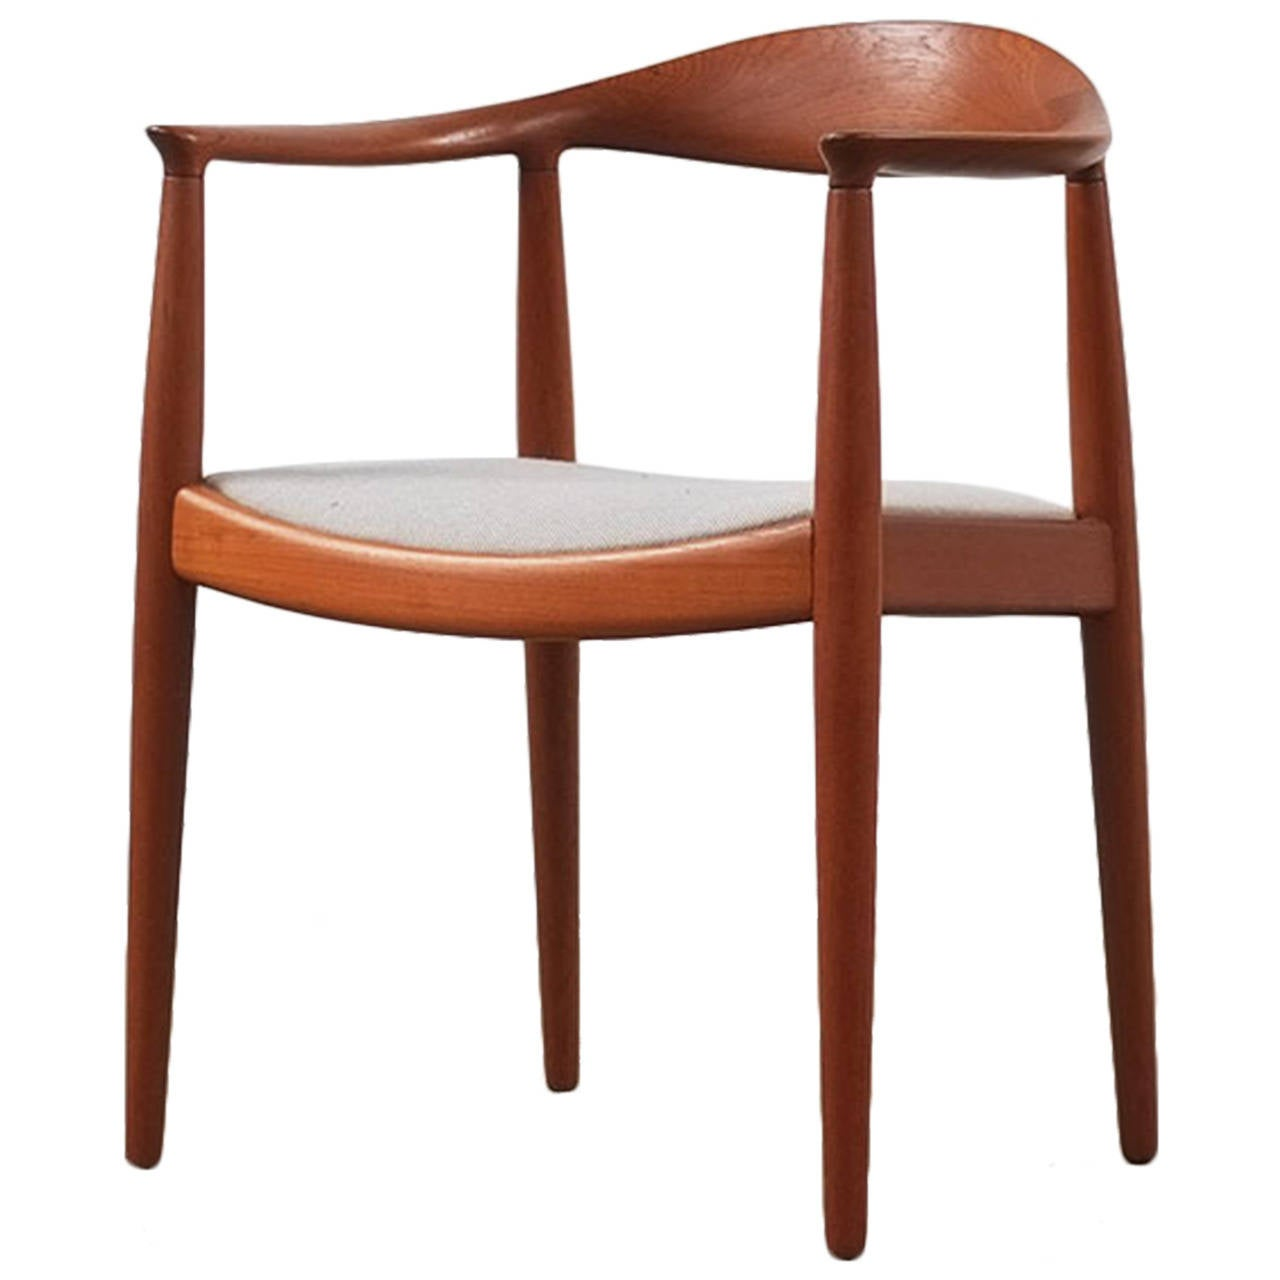 Hans Wegner Chair : hans wegner round chair at 1stdibs ~ Watch28wear.com Haus und Dekorationen